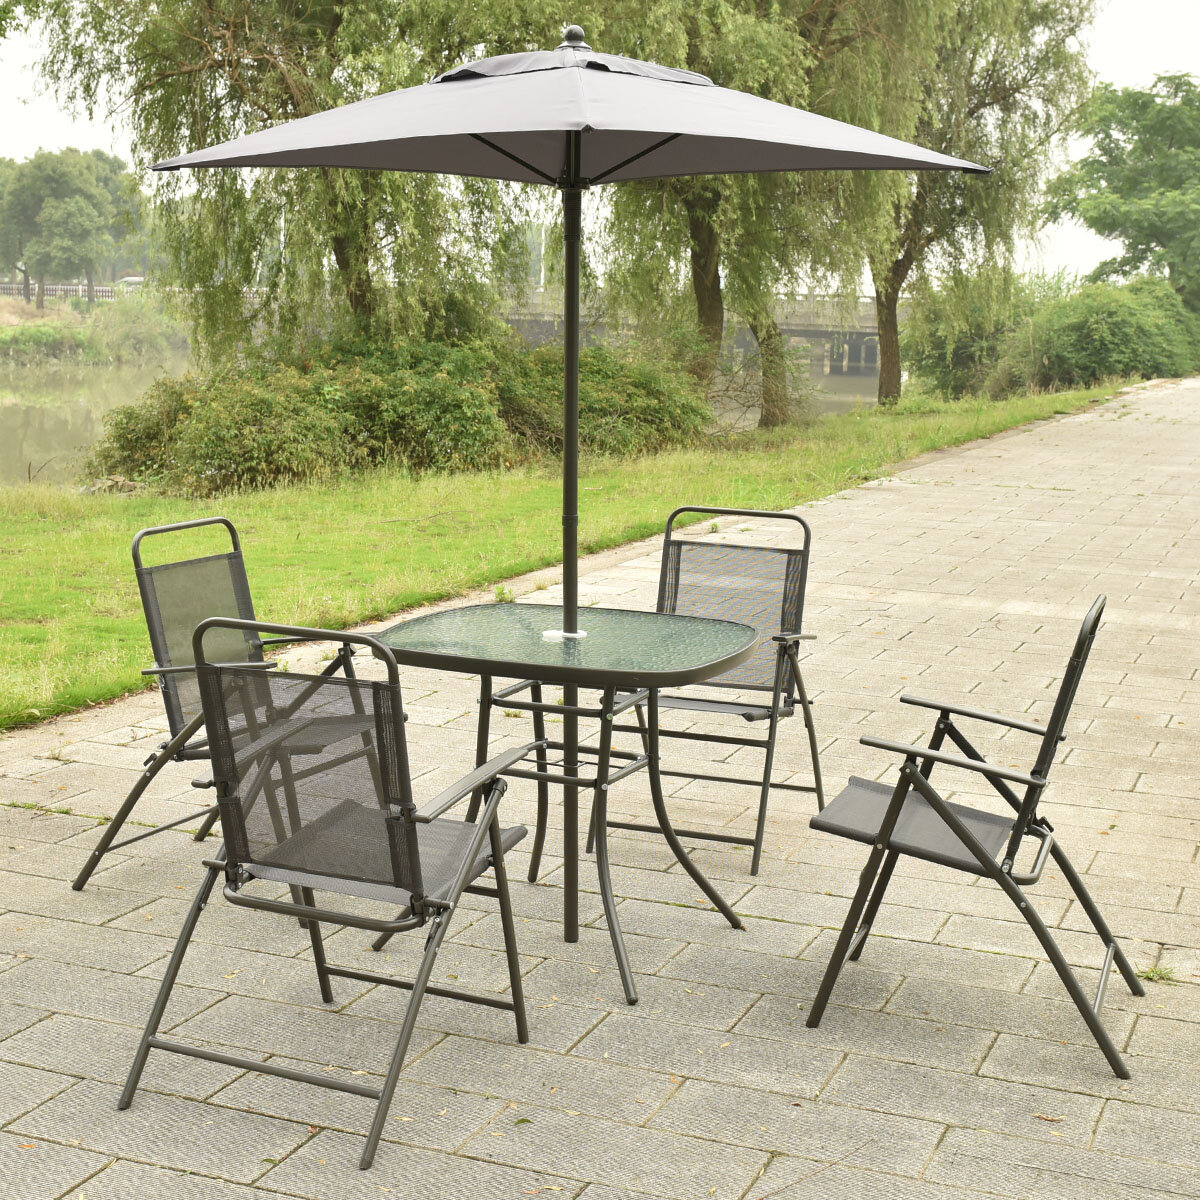 Costway Patio Garden Set Furniture with Folding Chairs Table with Umbrella  Grey